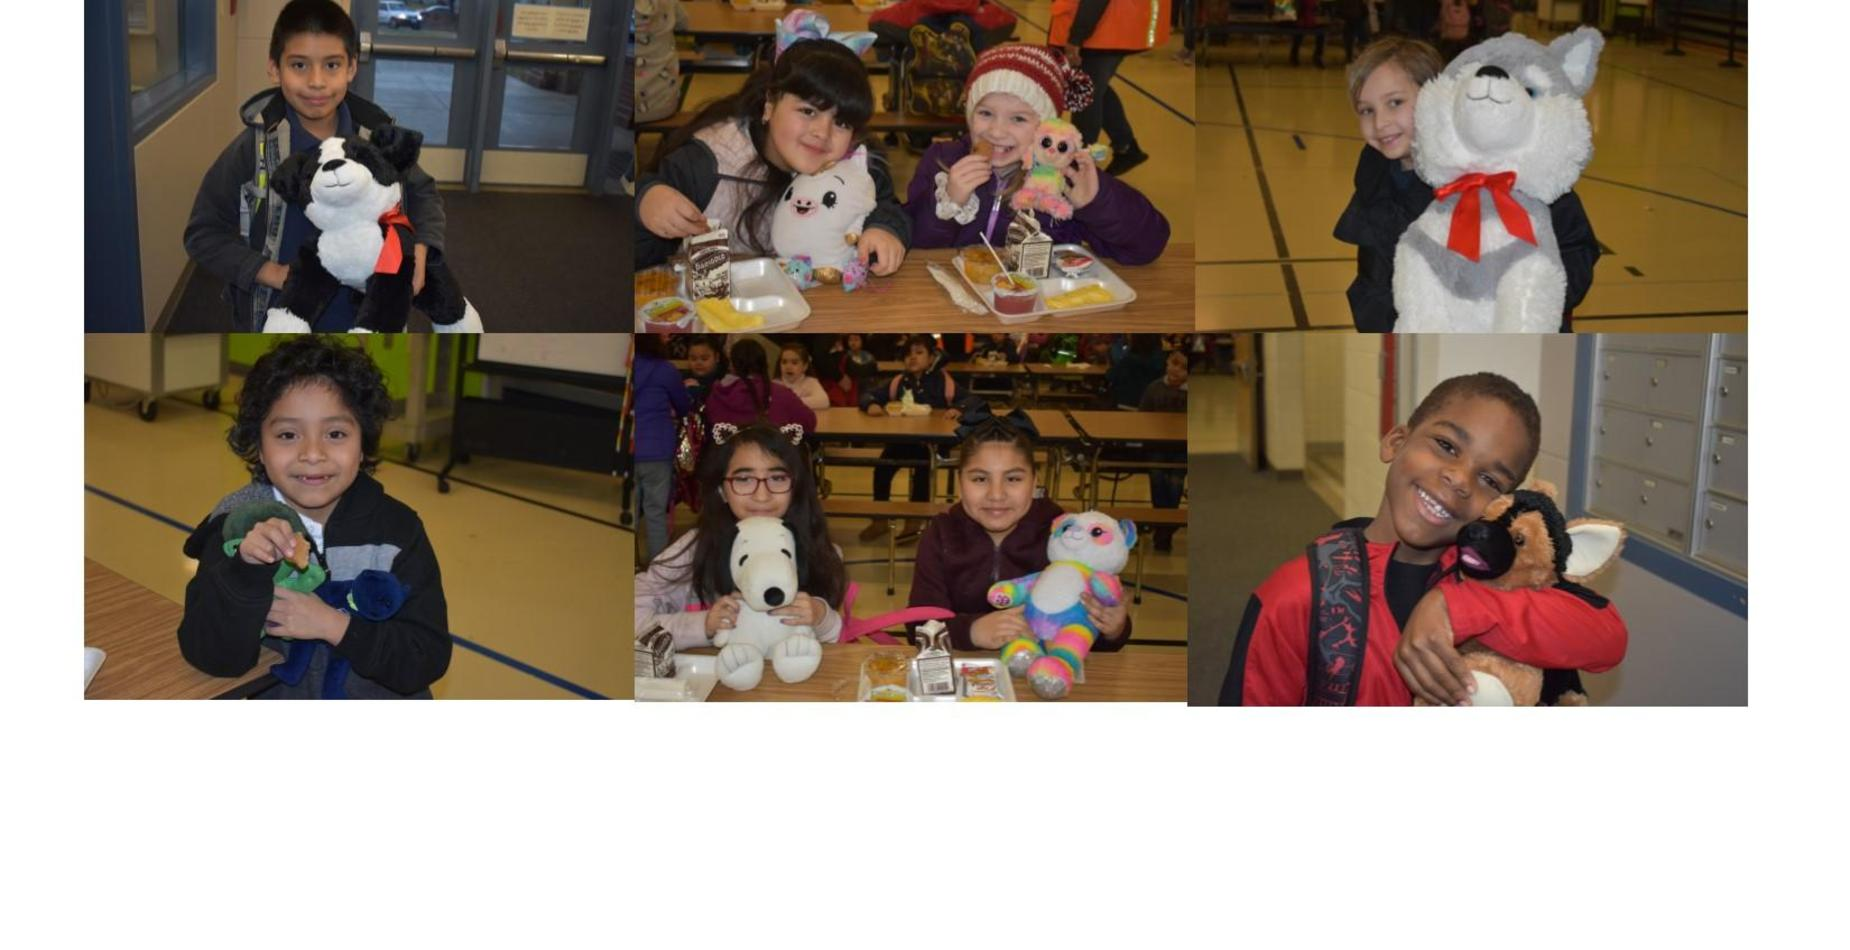 6 pictures of students holding their stuffed animals for stuffed animal day.  All students are smiling